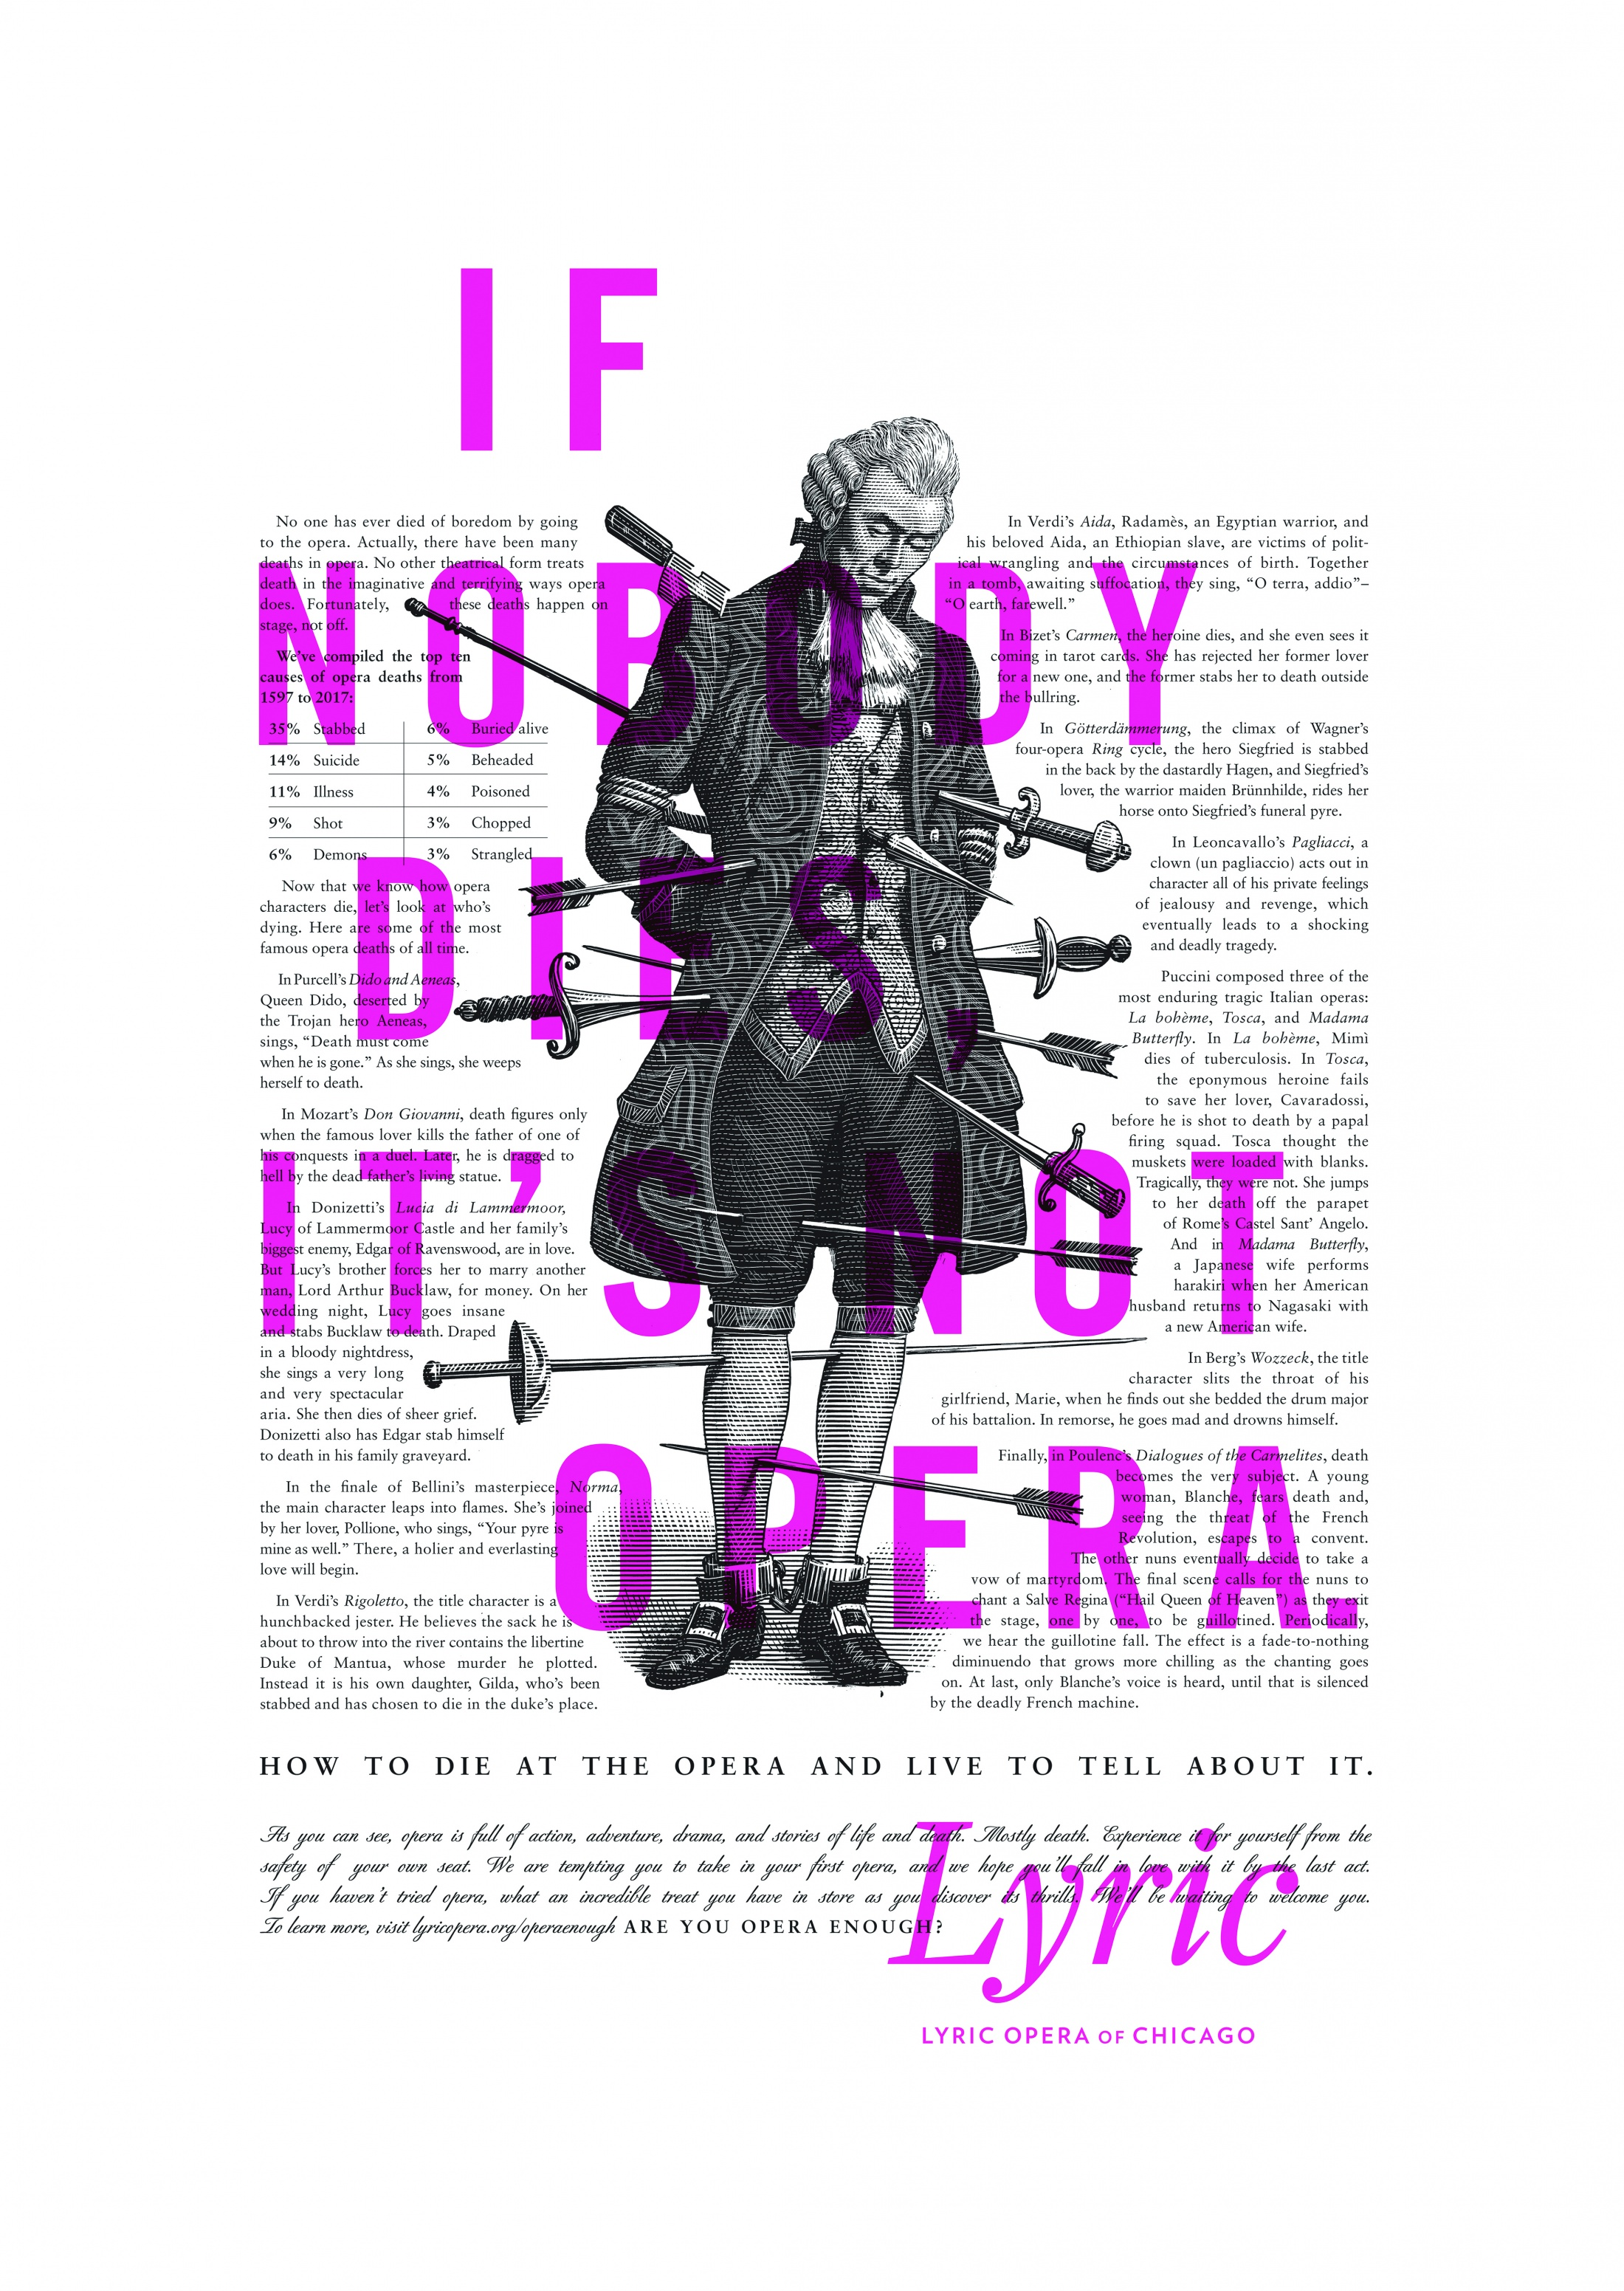 Thumbnail for Lyric Opera Print: Deaths